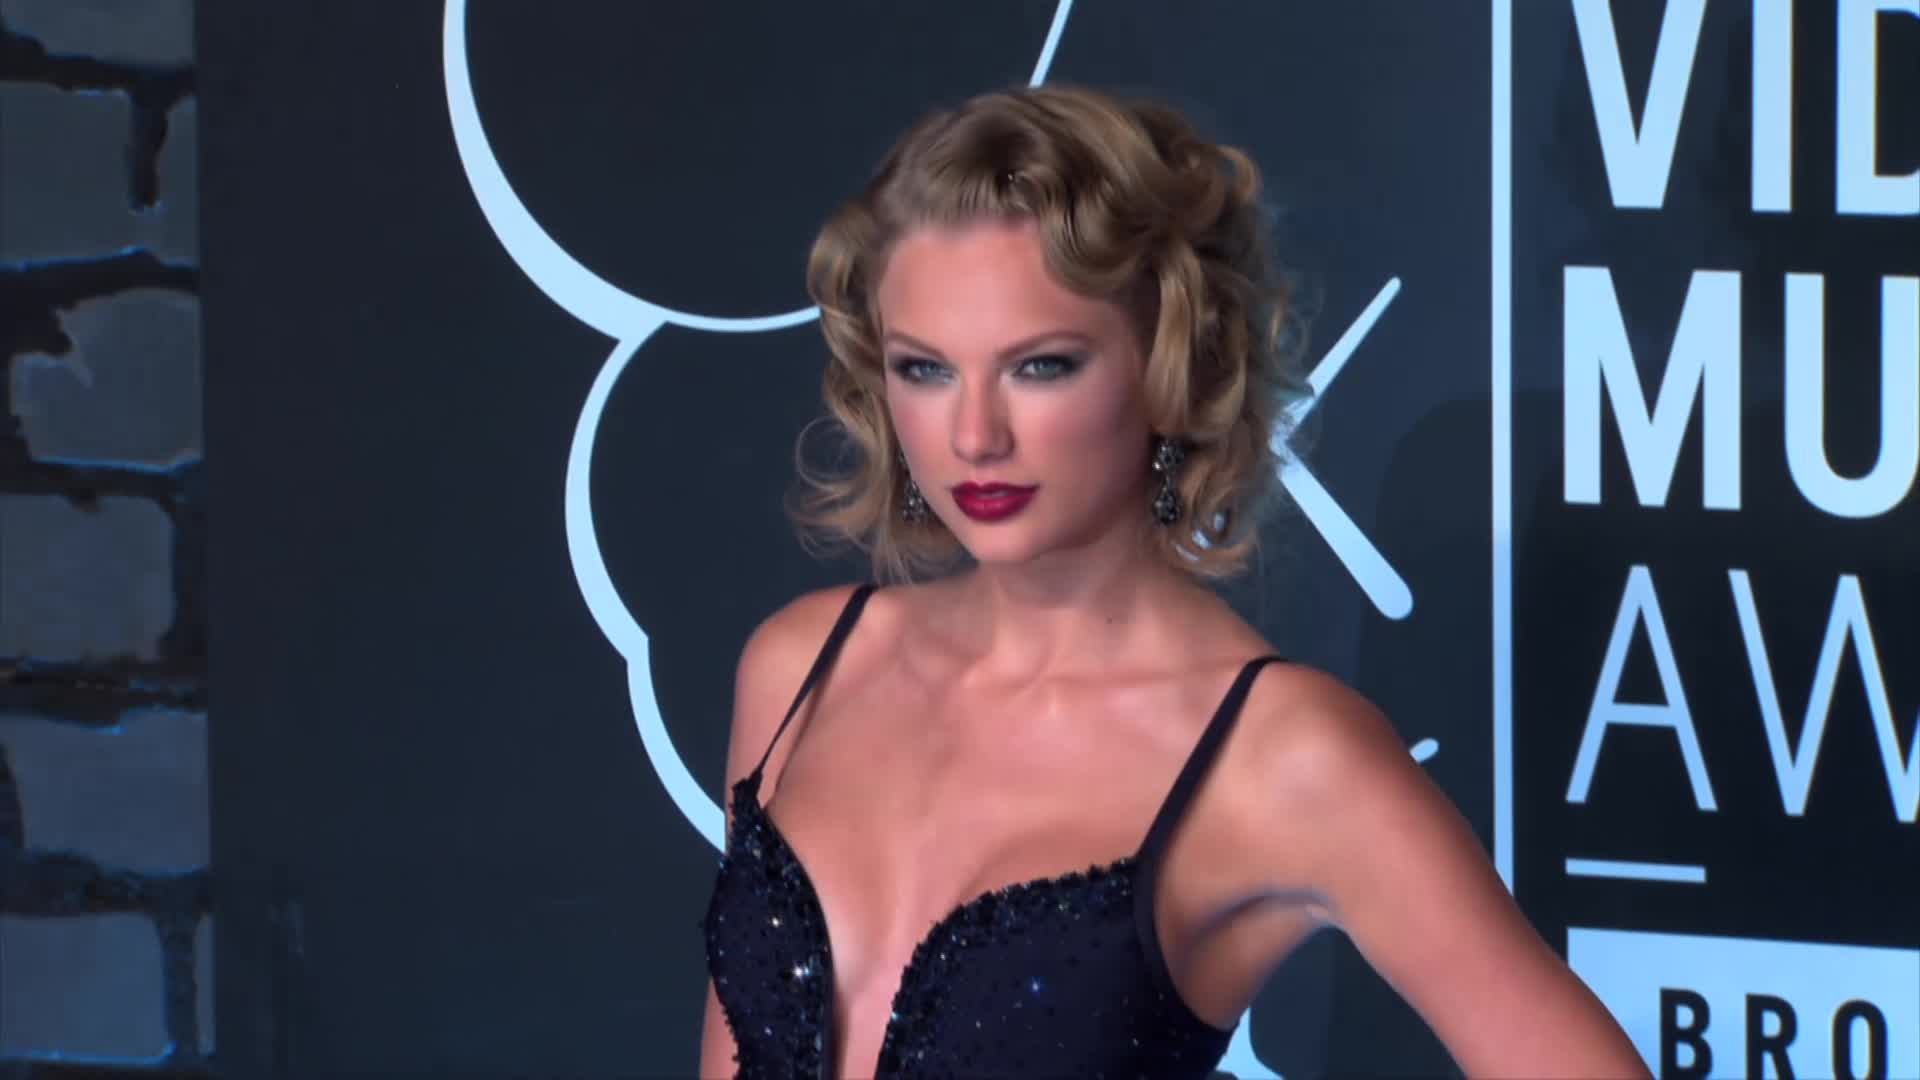 Taylor Swift at the premiere of 'Romeo and Juliet' on Tuesday in Hollywood (Photo: SplashNews)